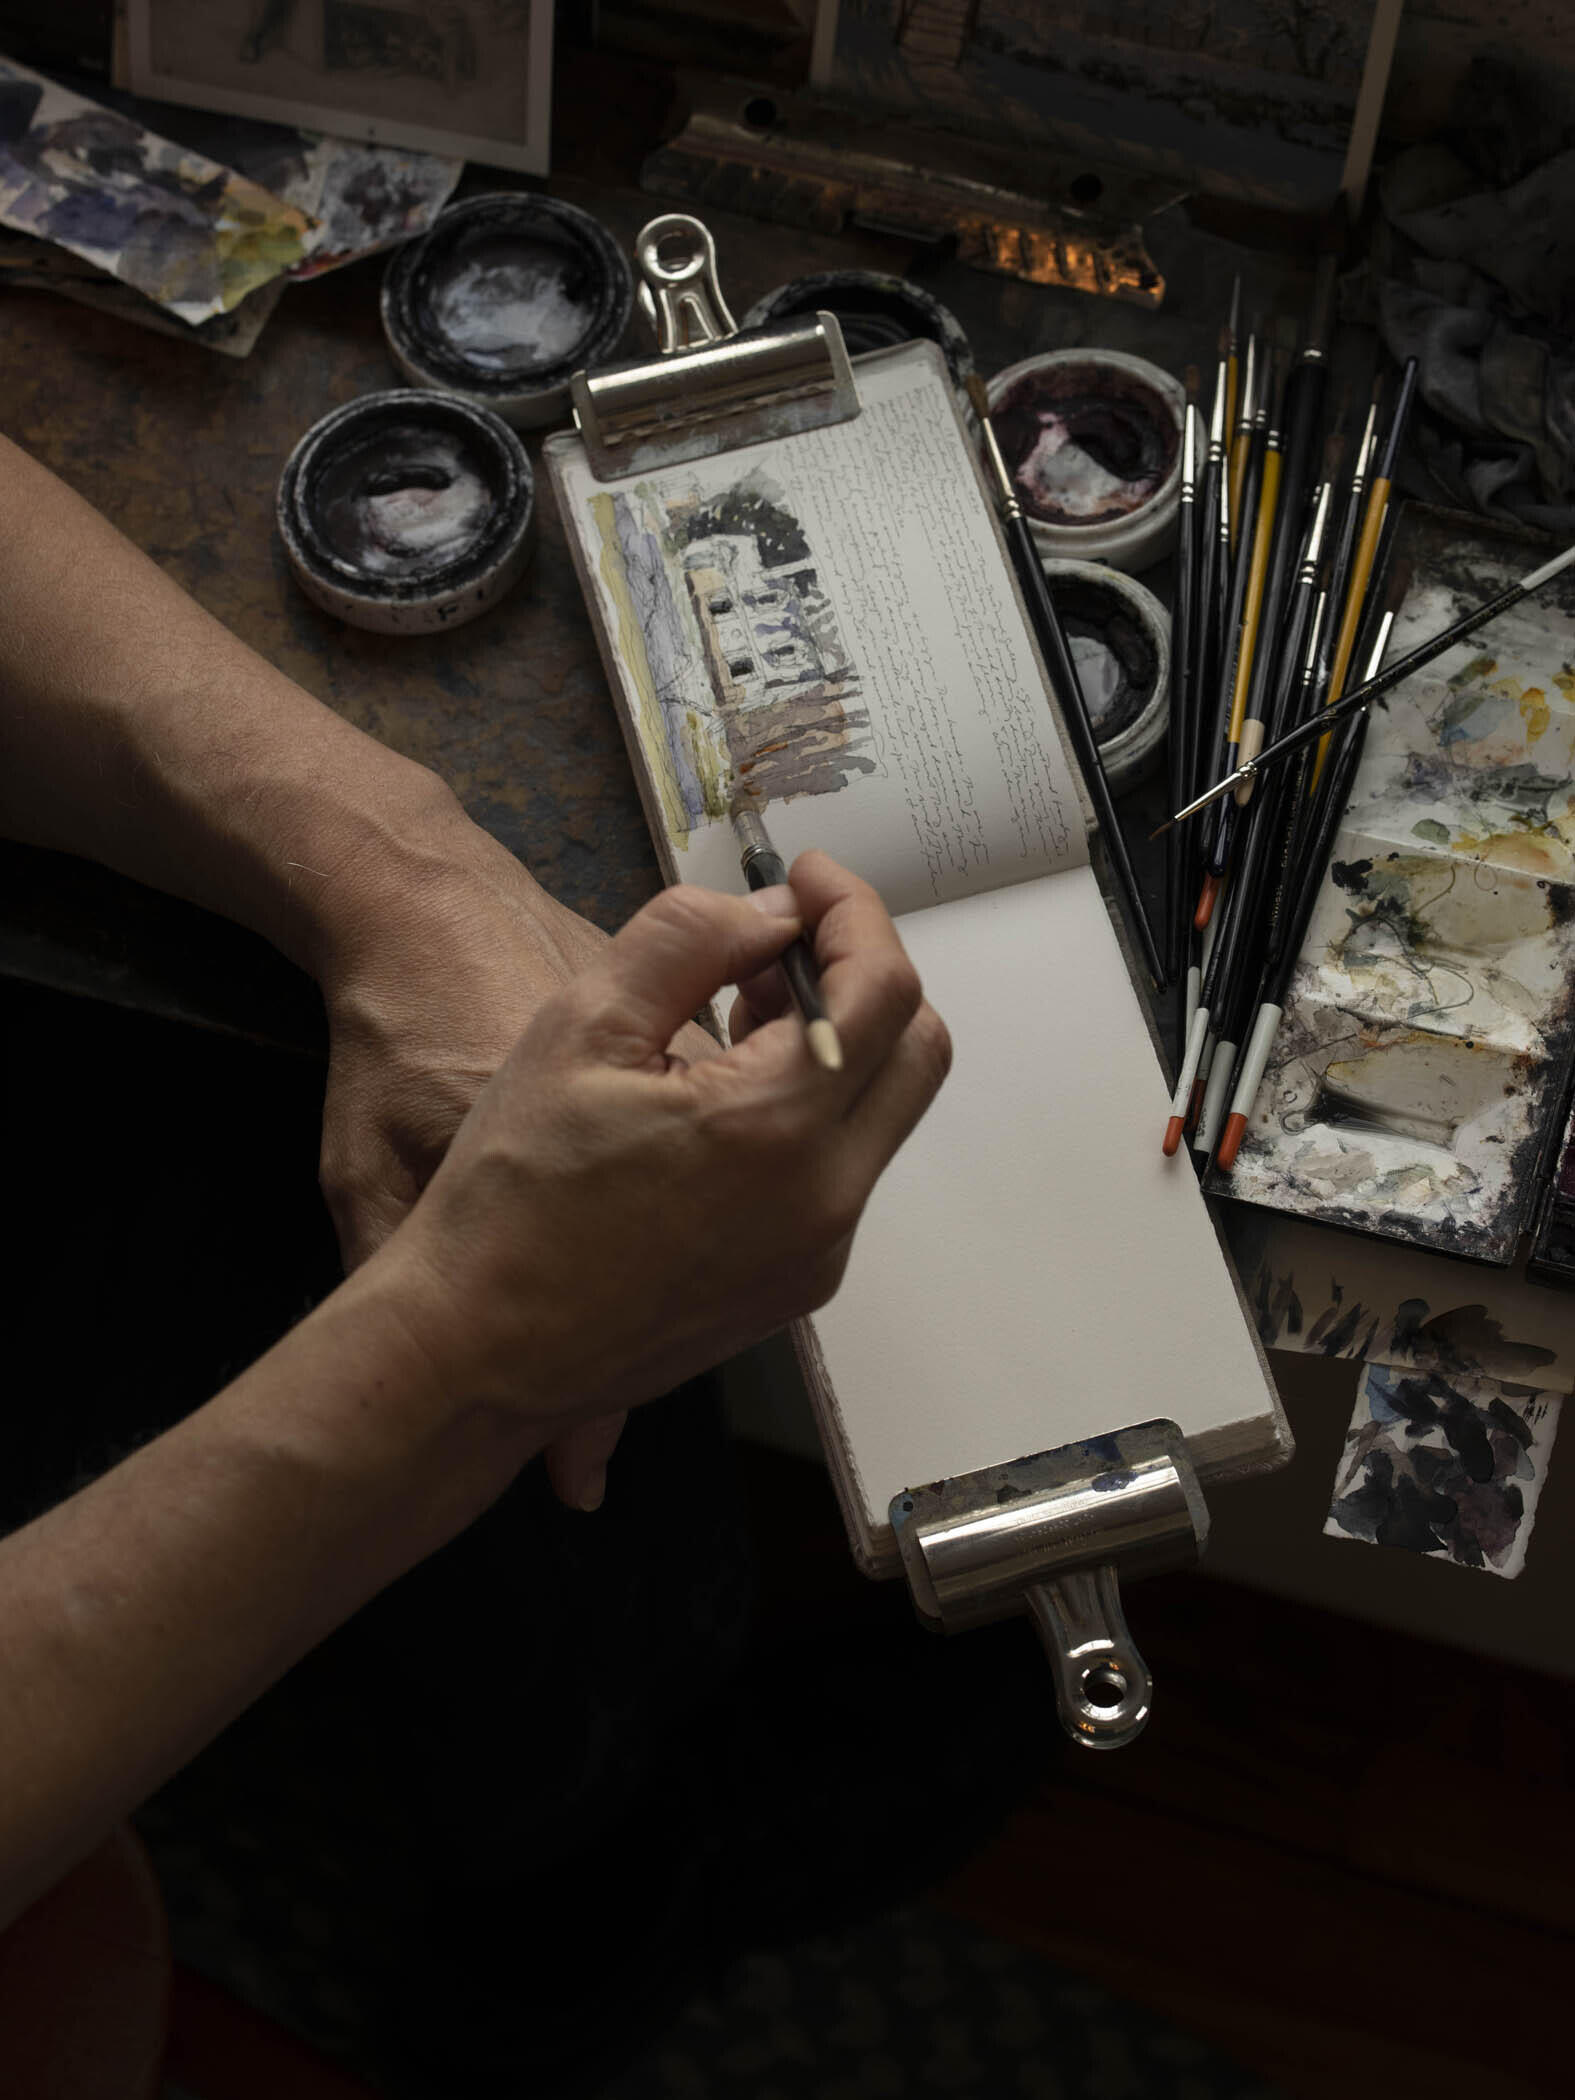 Photograph of the Artist Painting in His Journal, 2020 image